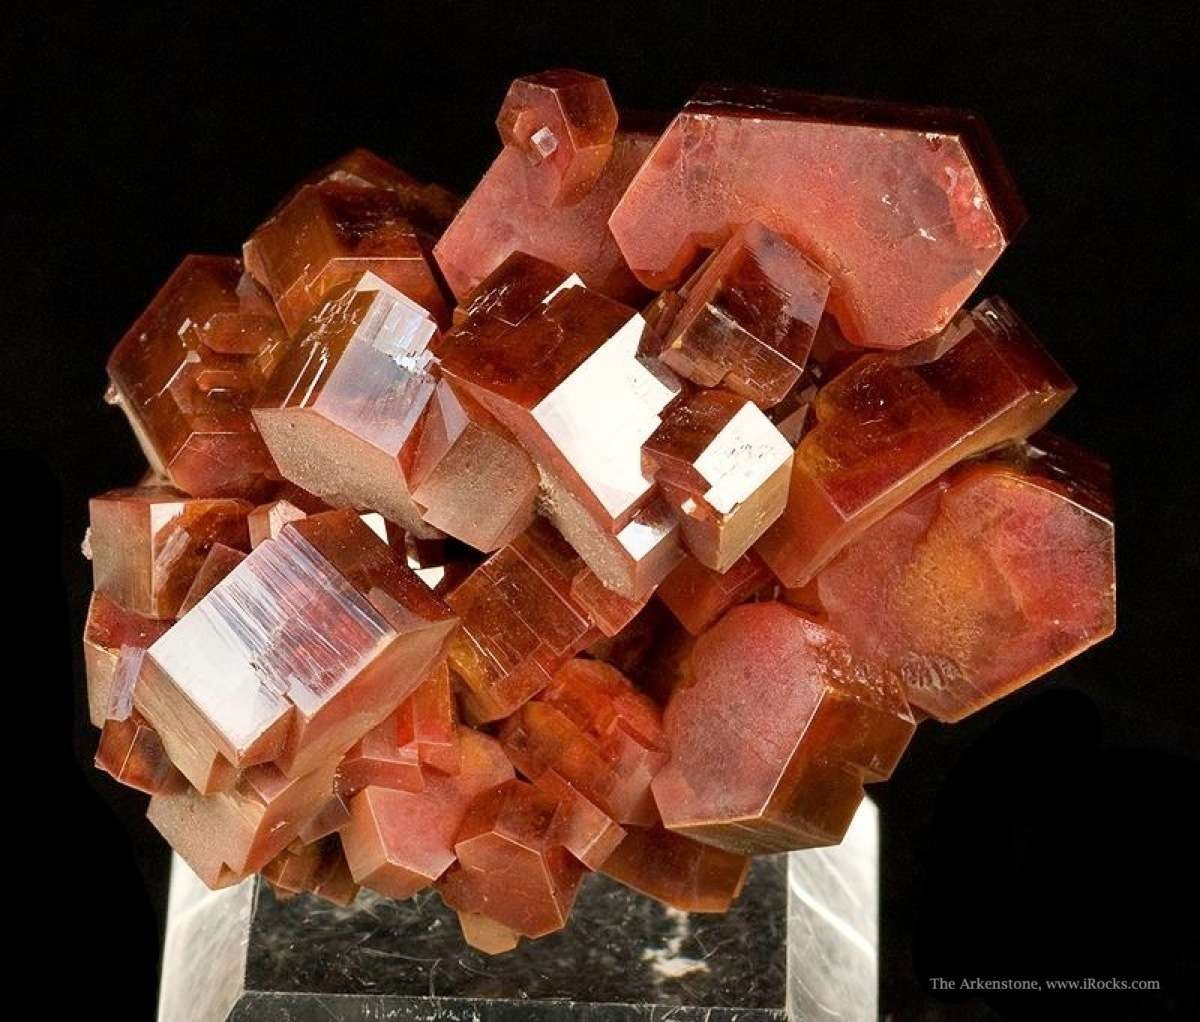 From 2009 noted thick robust crystals sharp specimen crystals 2 0 cm